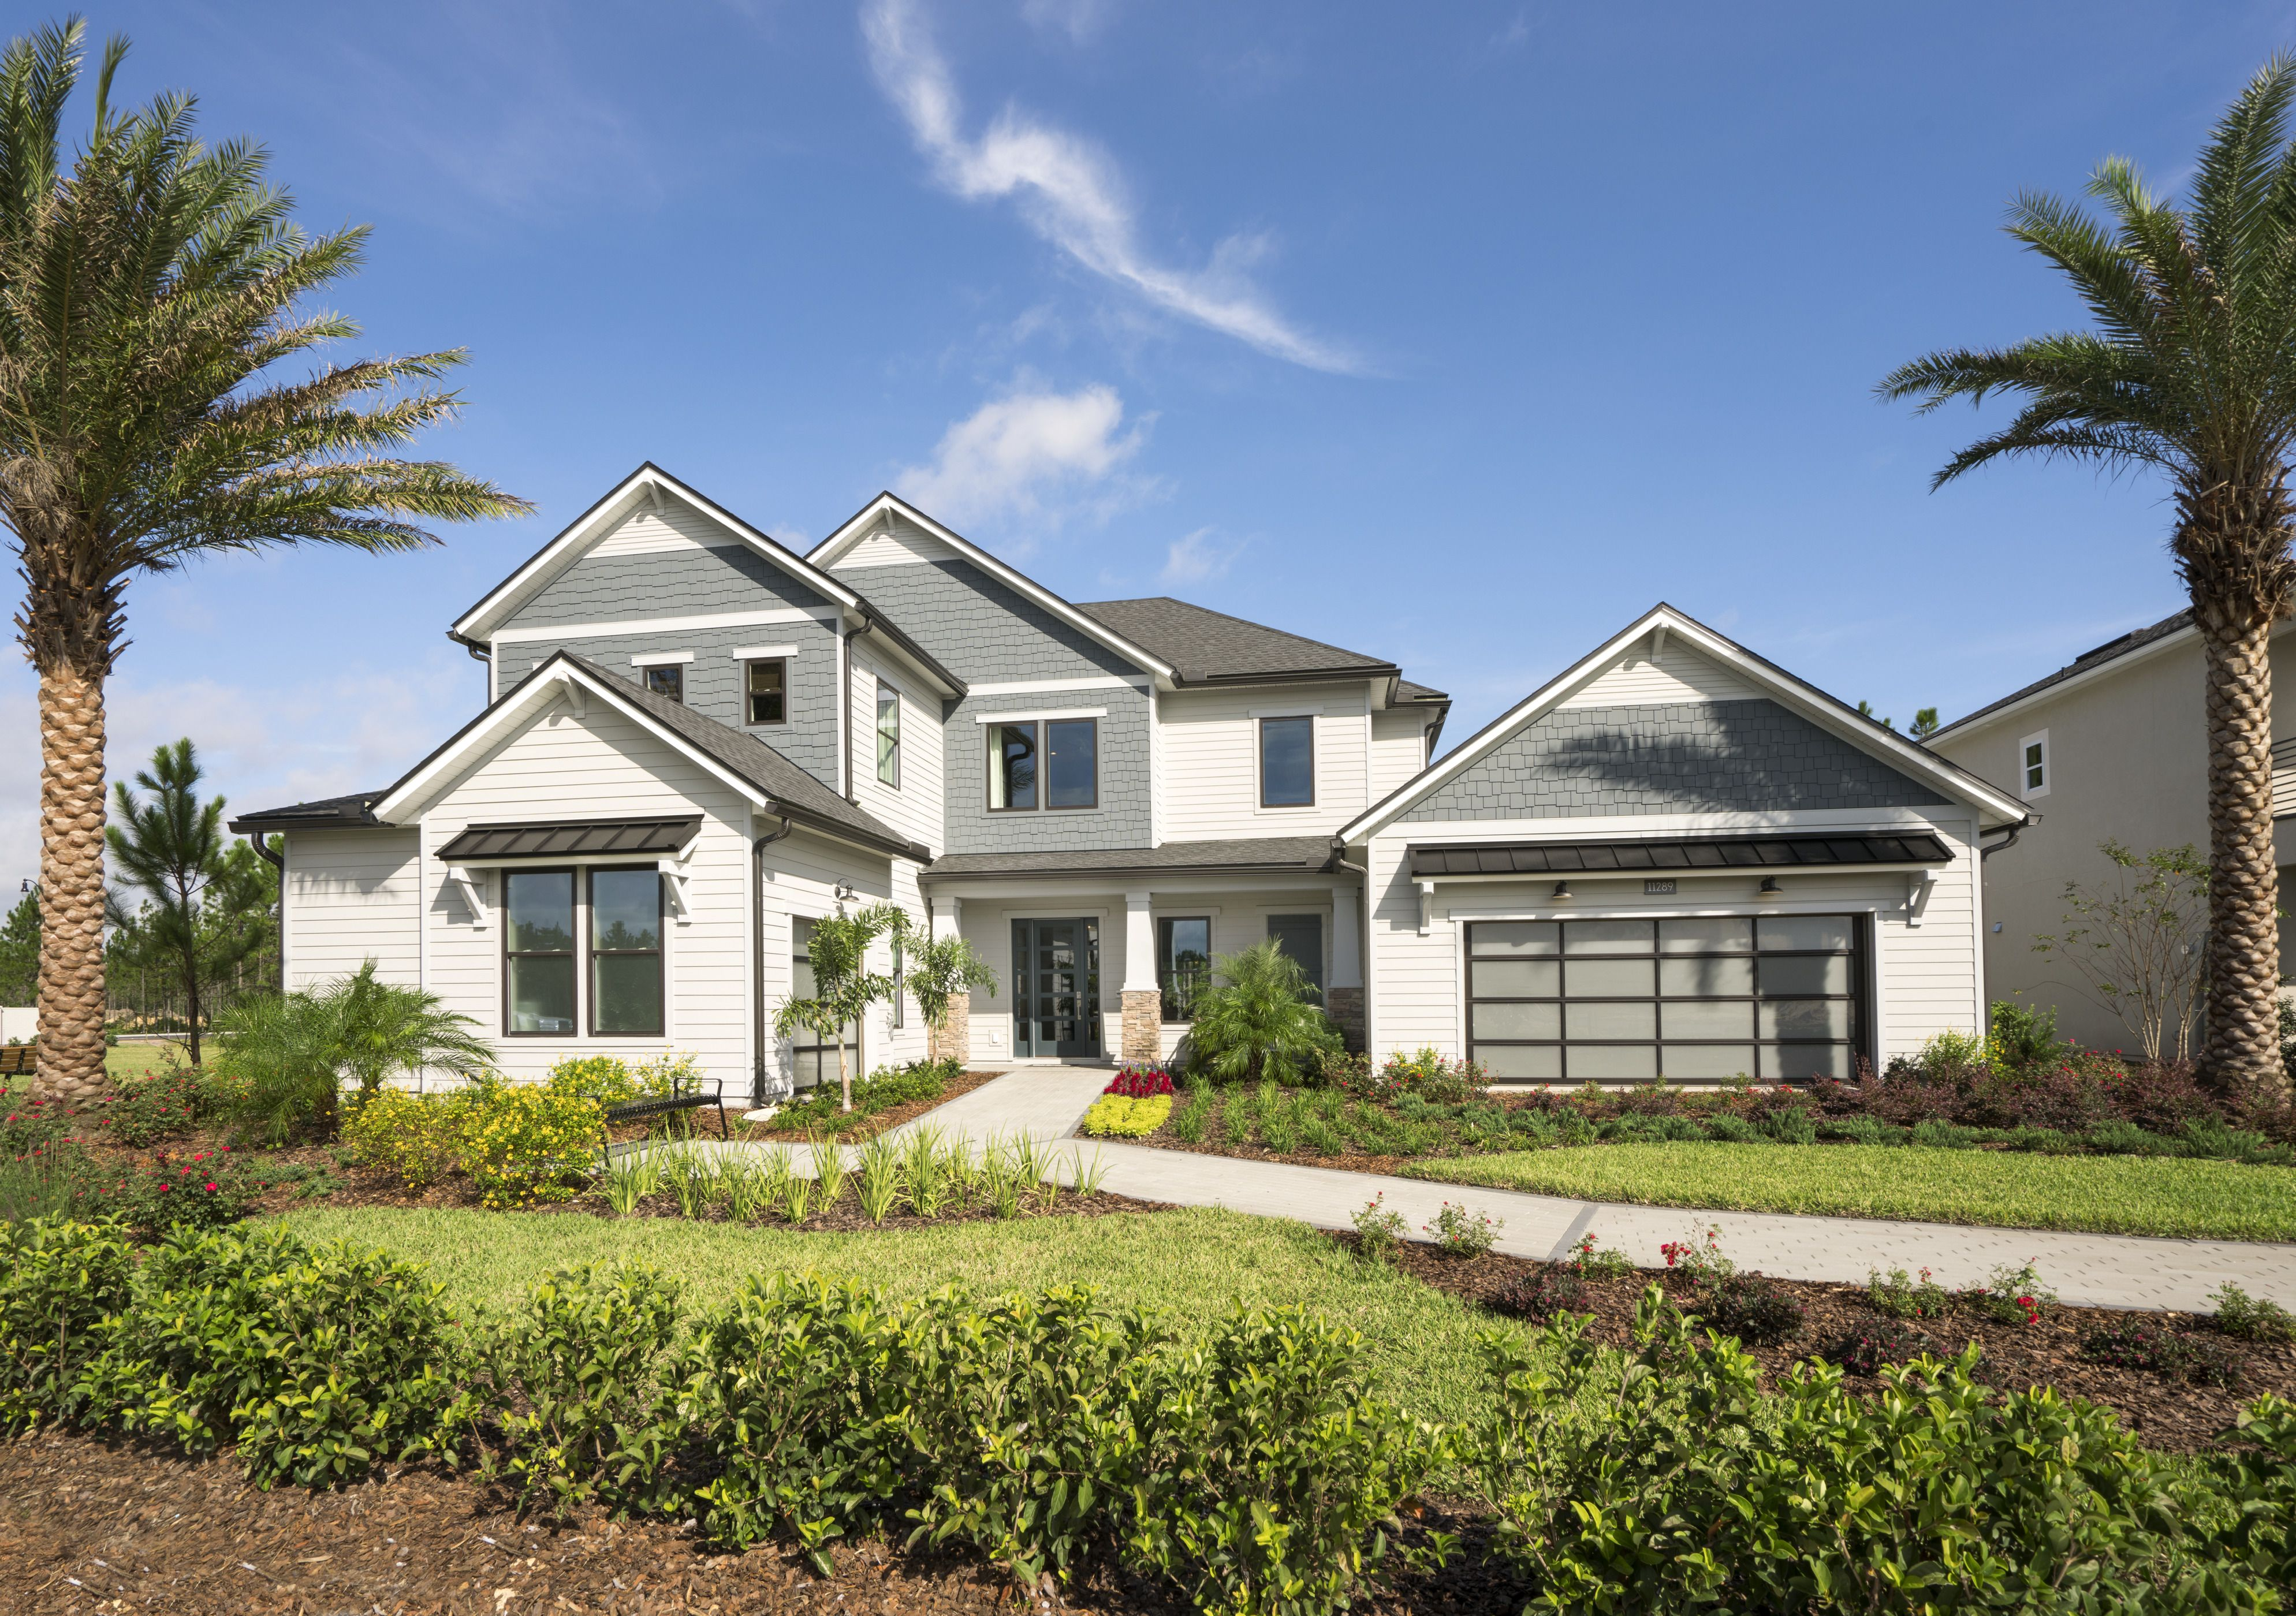 A Modern Craftsman Exterior That Excites Pictured Above Edison